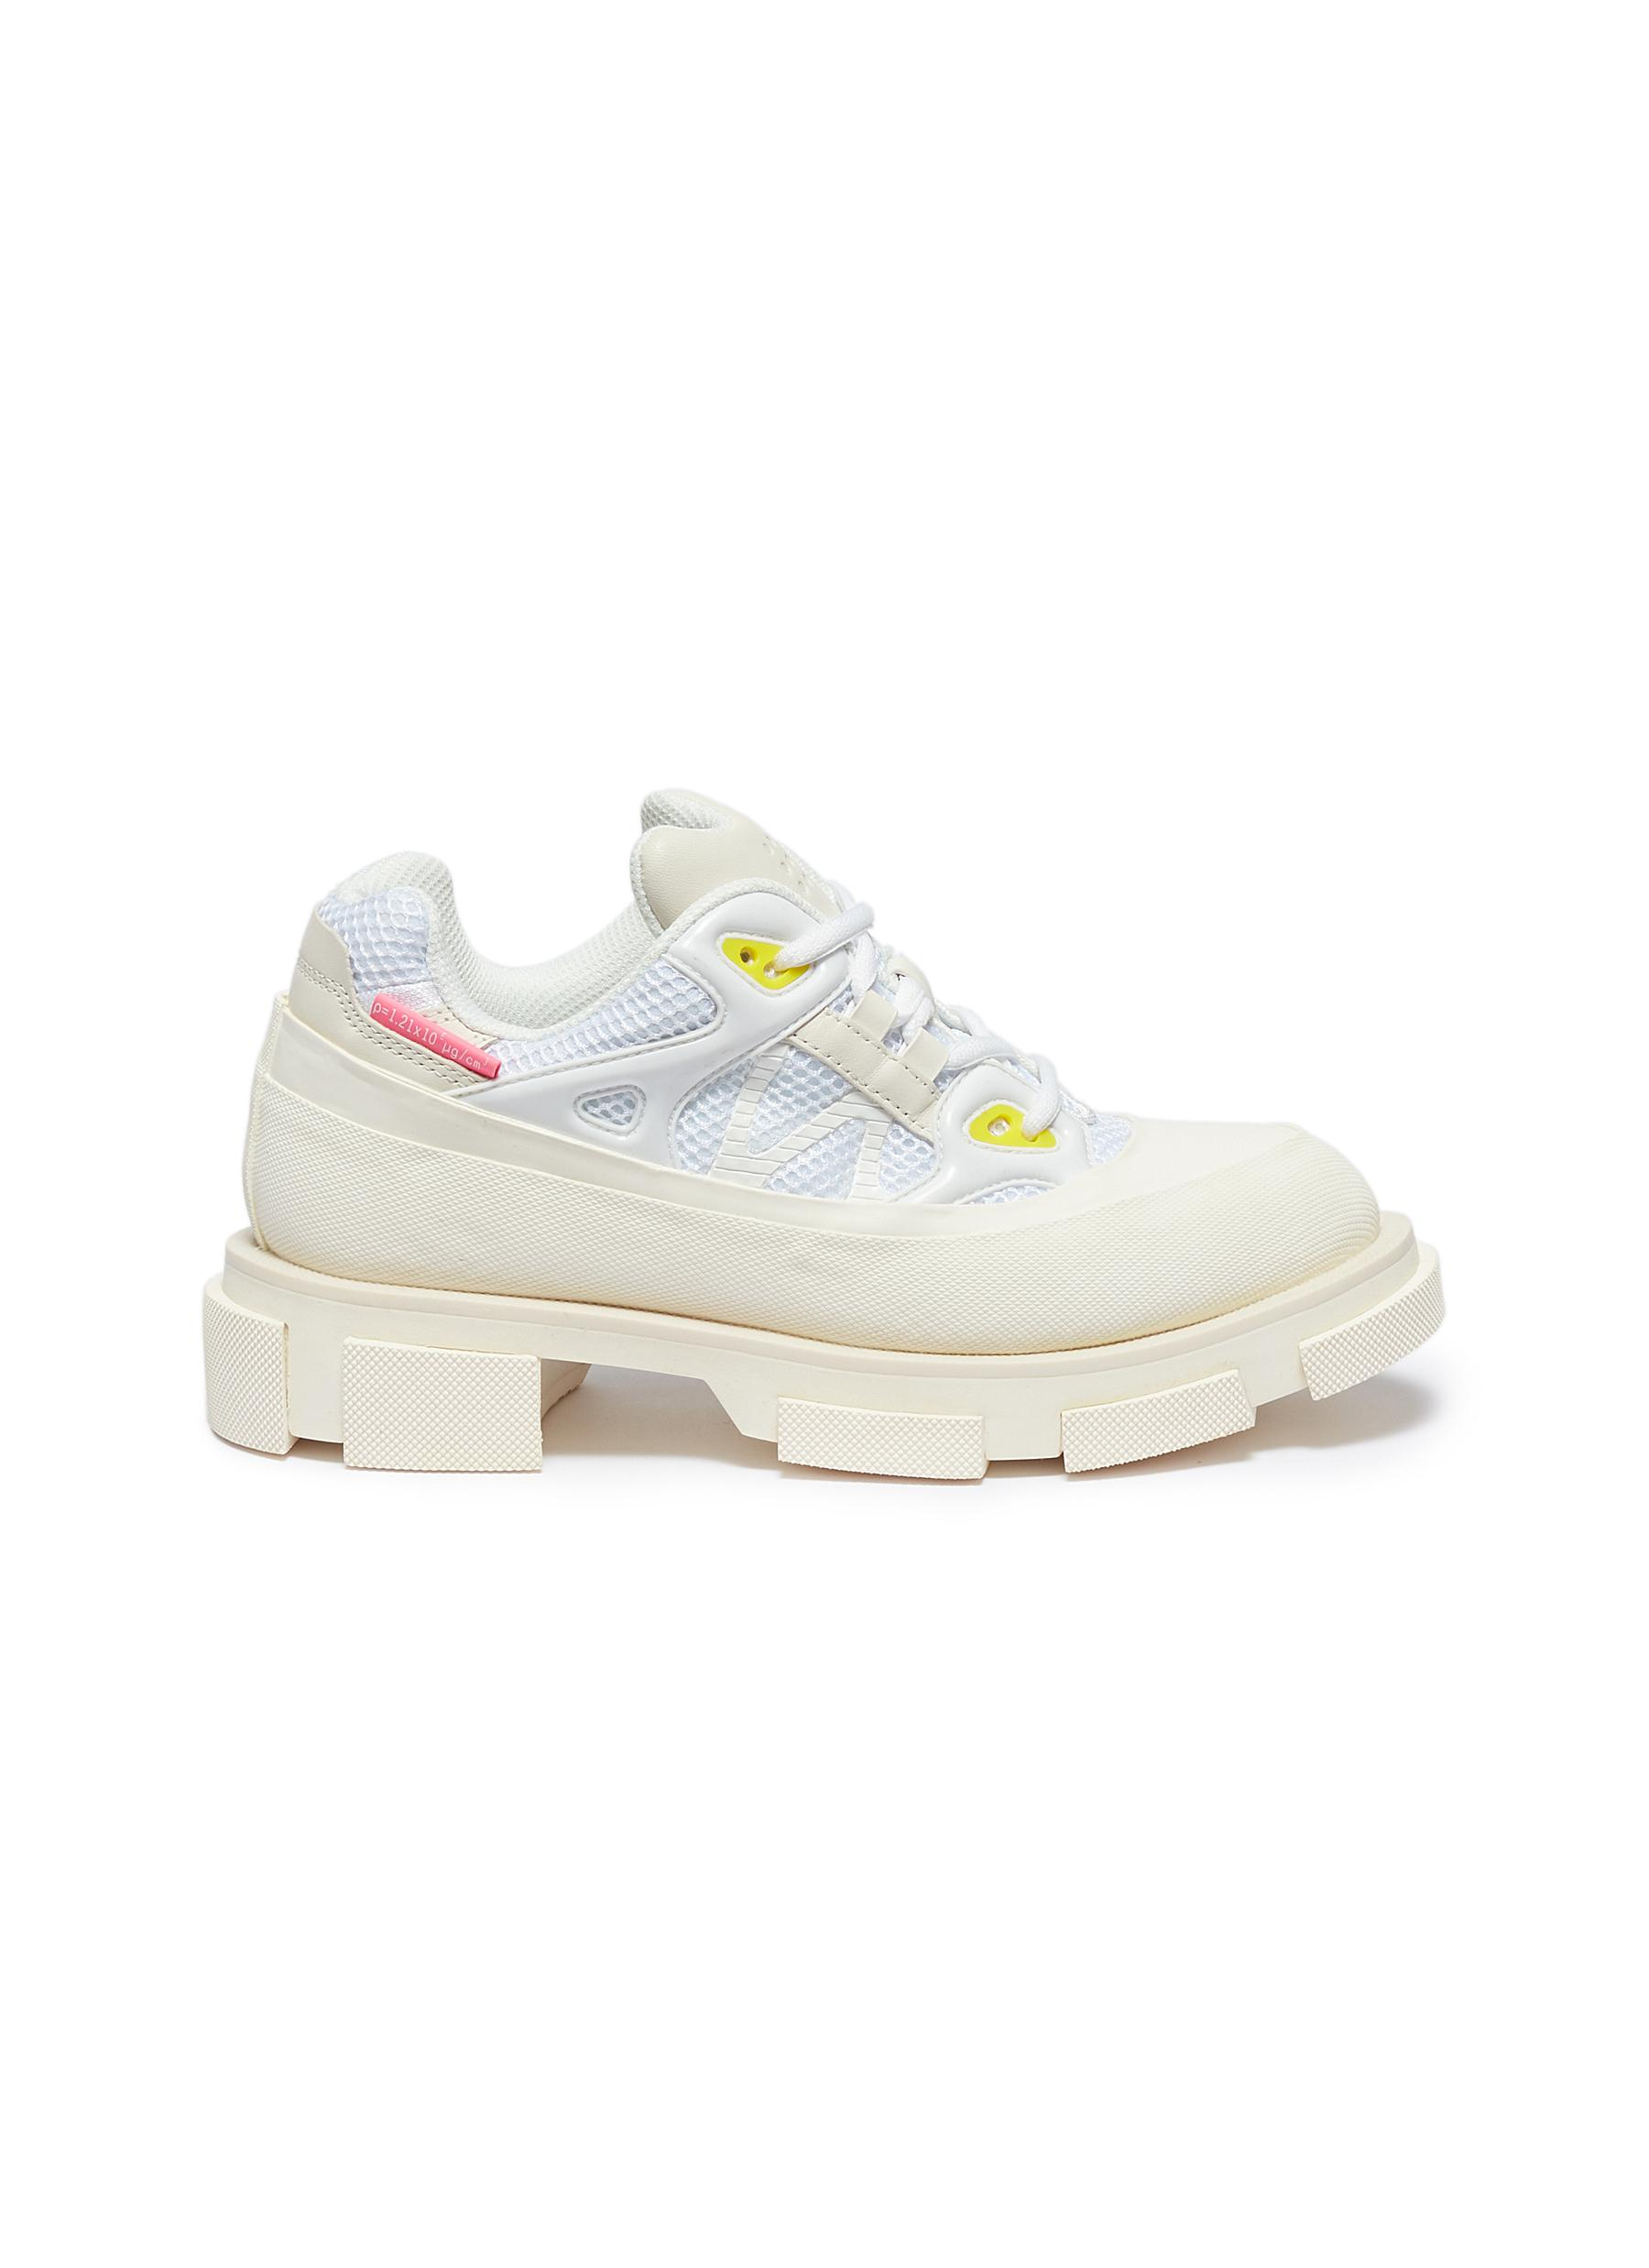 Photo of Gao Runner web panelled sneakers by both womens shoes - buy both footwear online